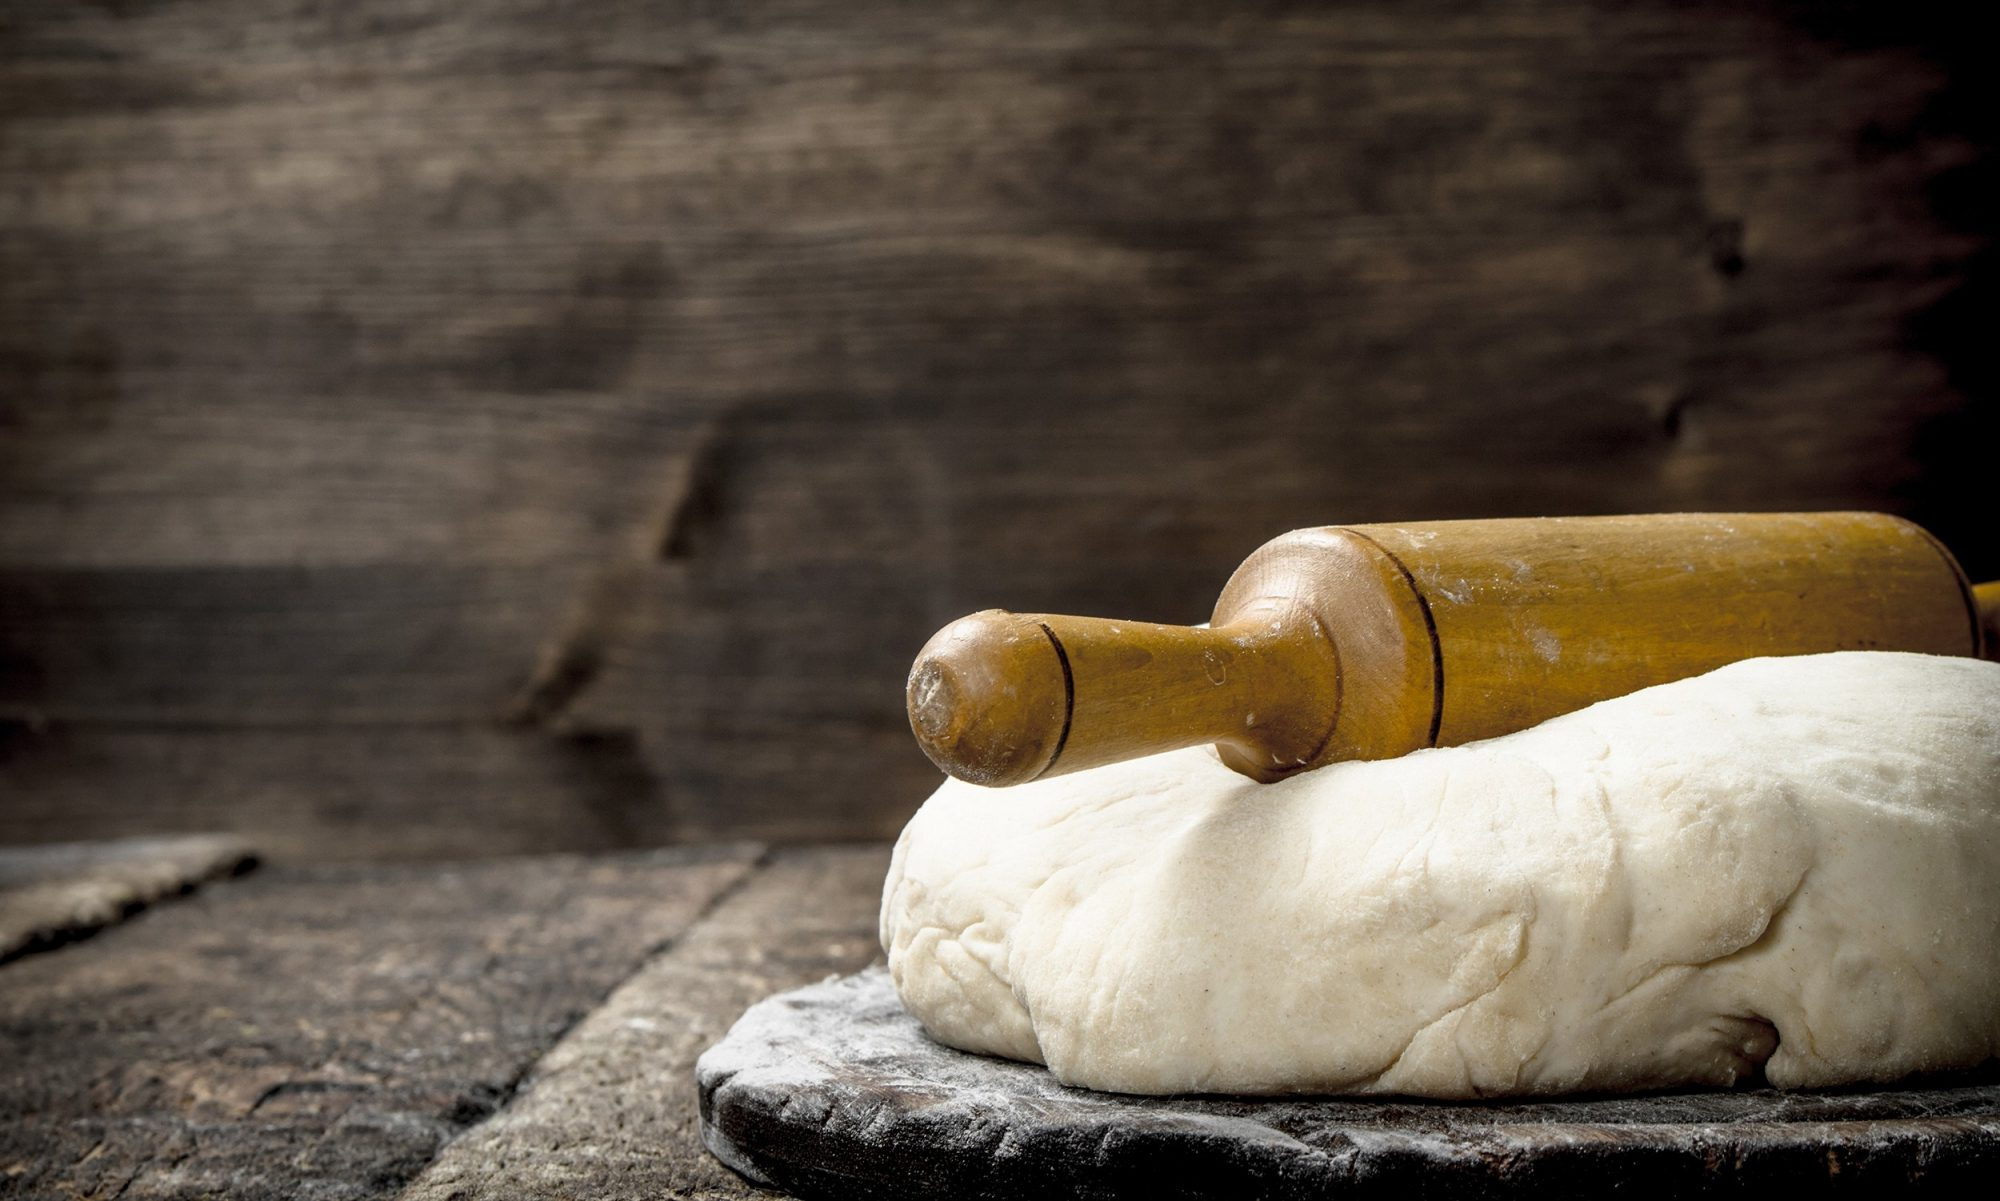 pizza dough rolling pin